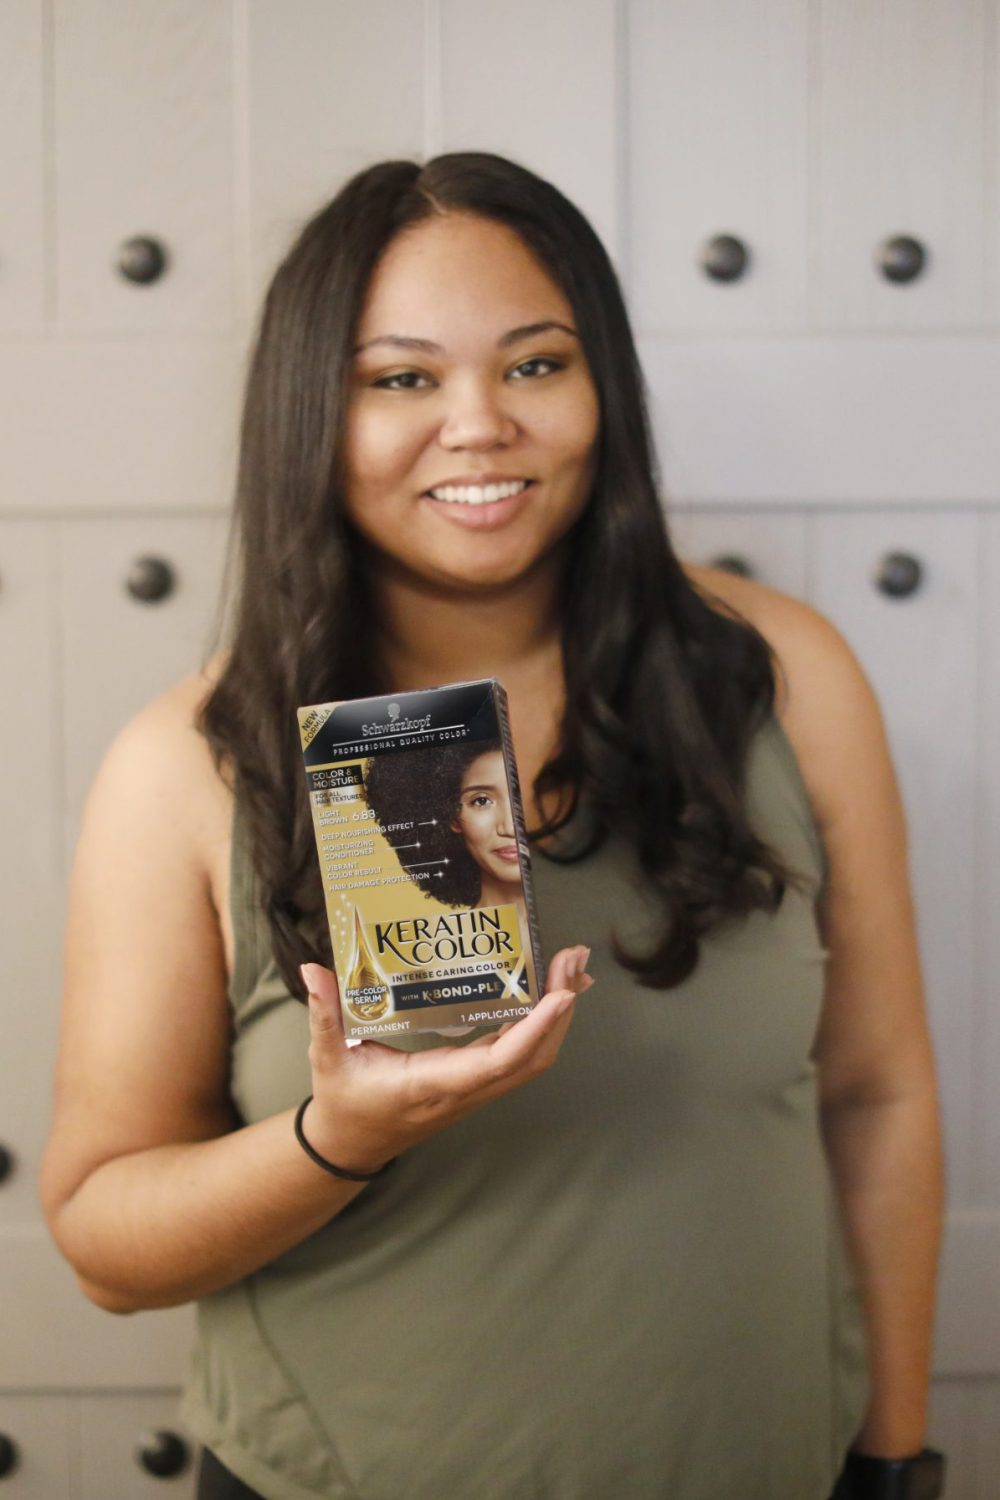 woman holding keratin color box